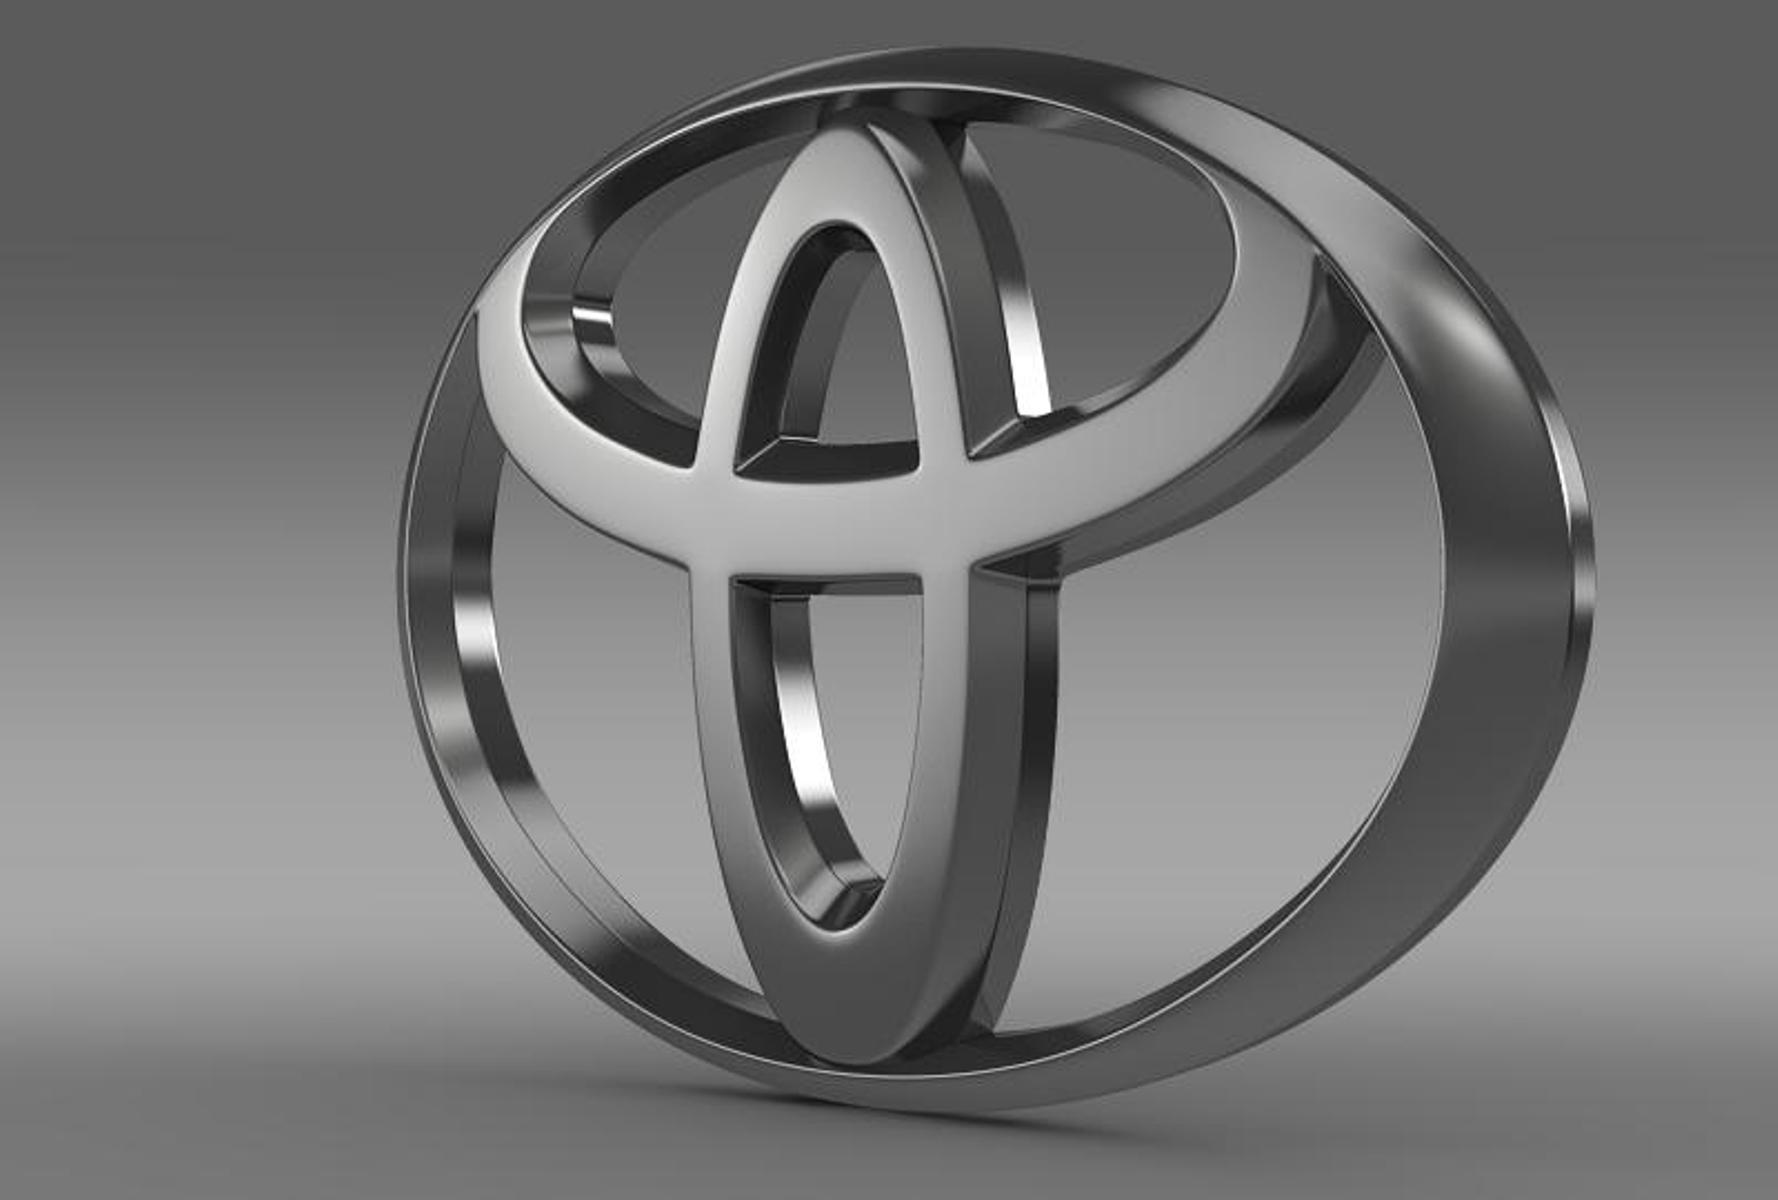 Toyota Logo Wallpapers - Wallpaper Cave